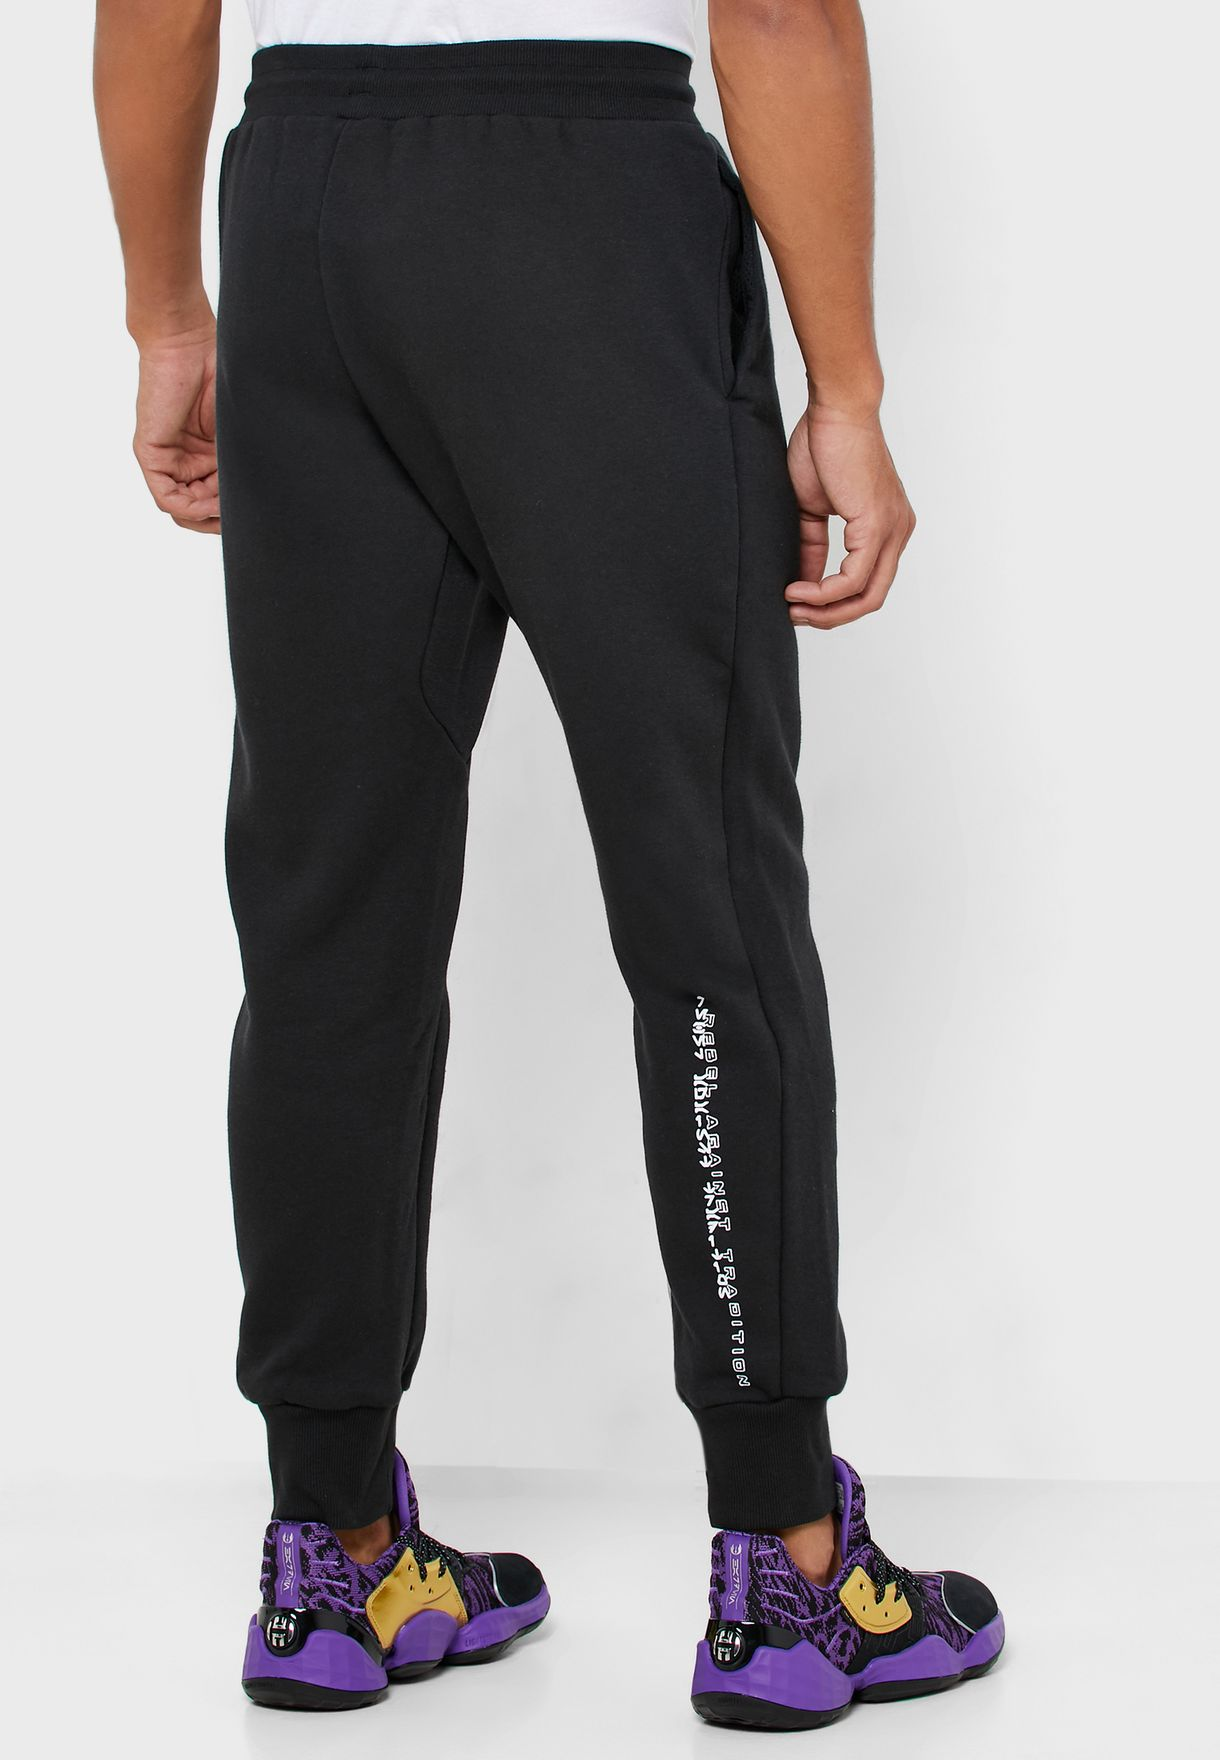 Star Wars Sweatpants